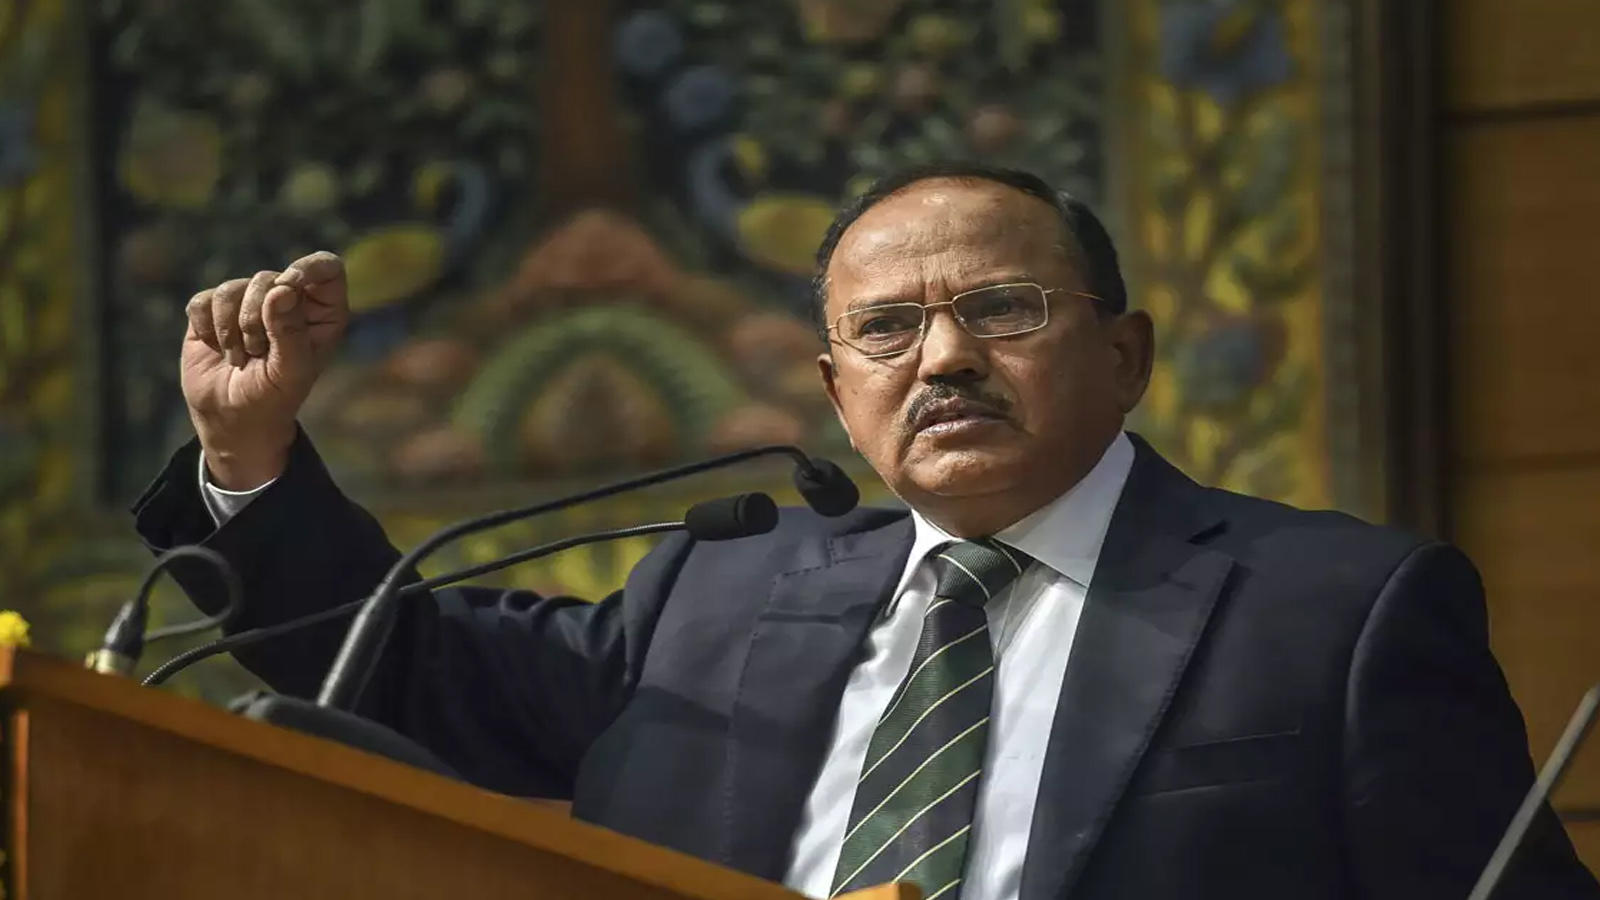 nsa-ajit-doval-says-will-fight-on-our-soil-as-well-as-on-foreign-soil